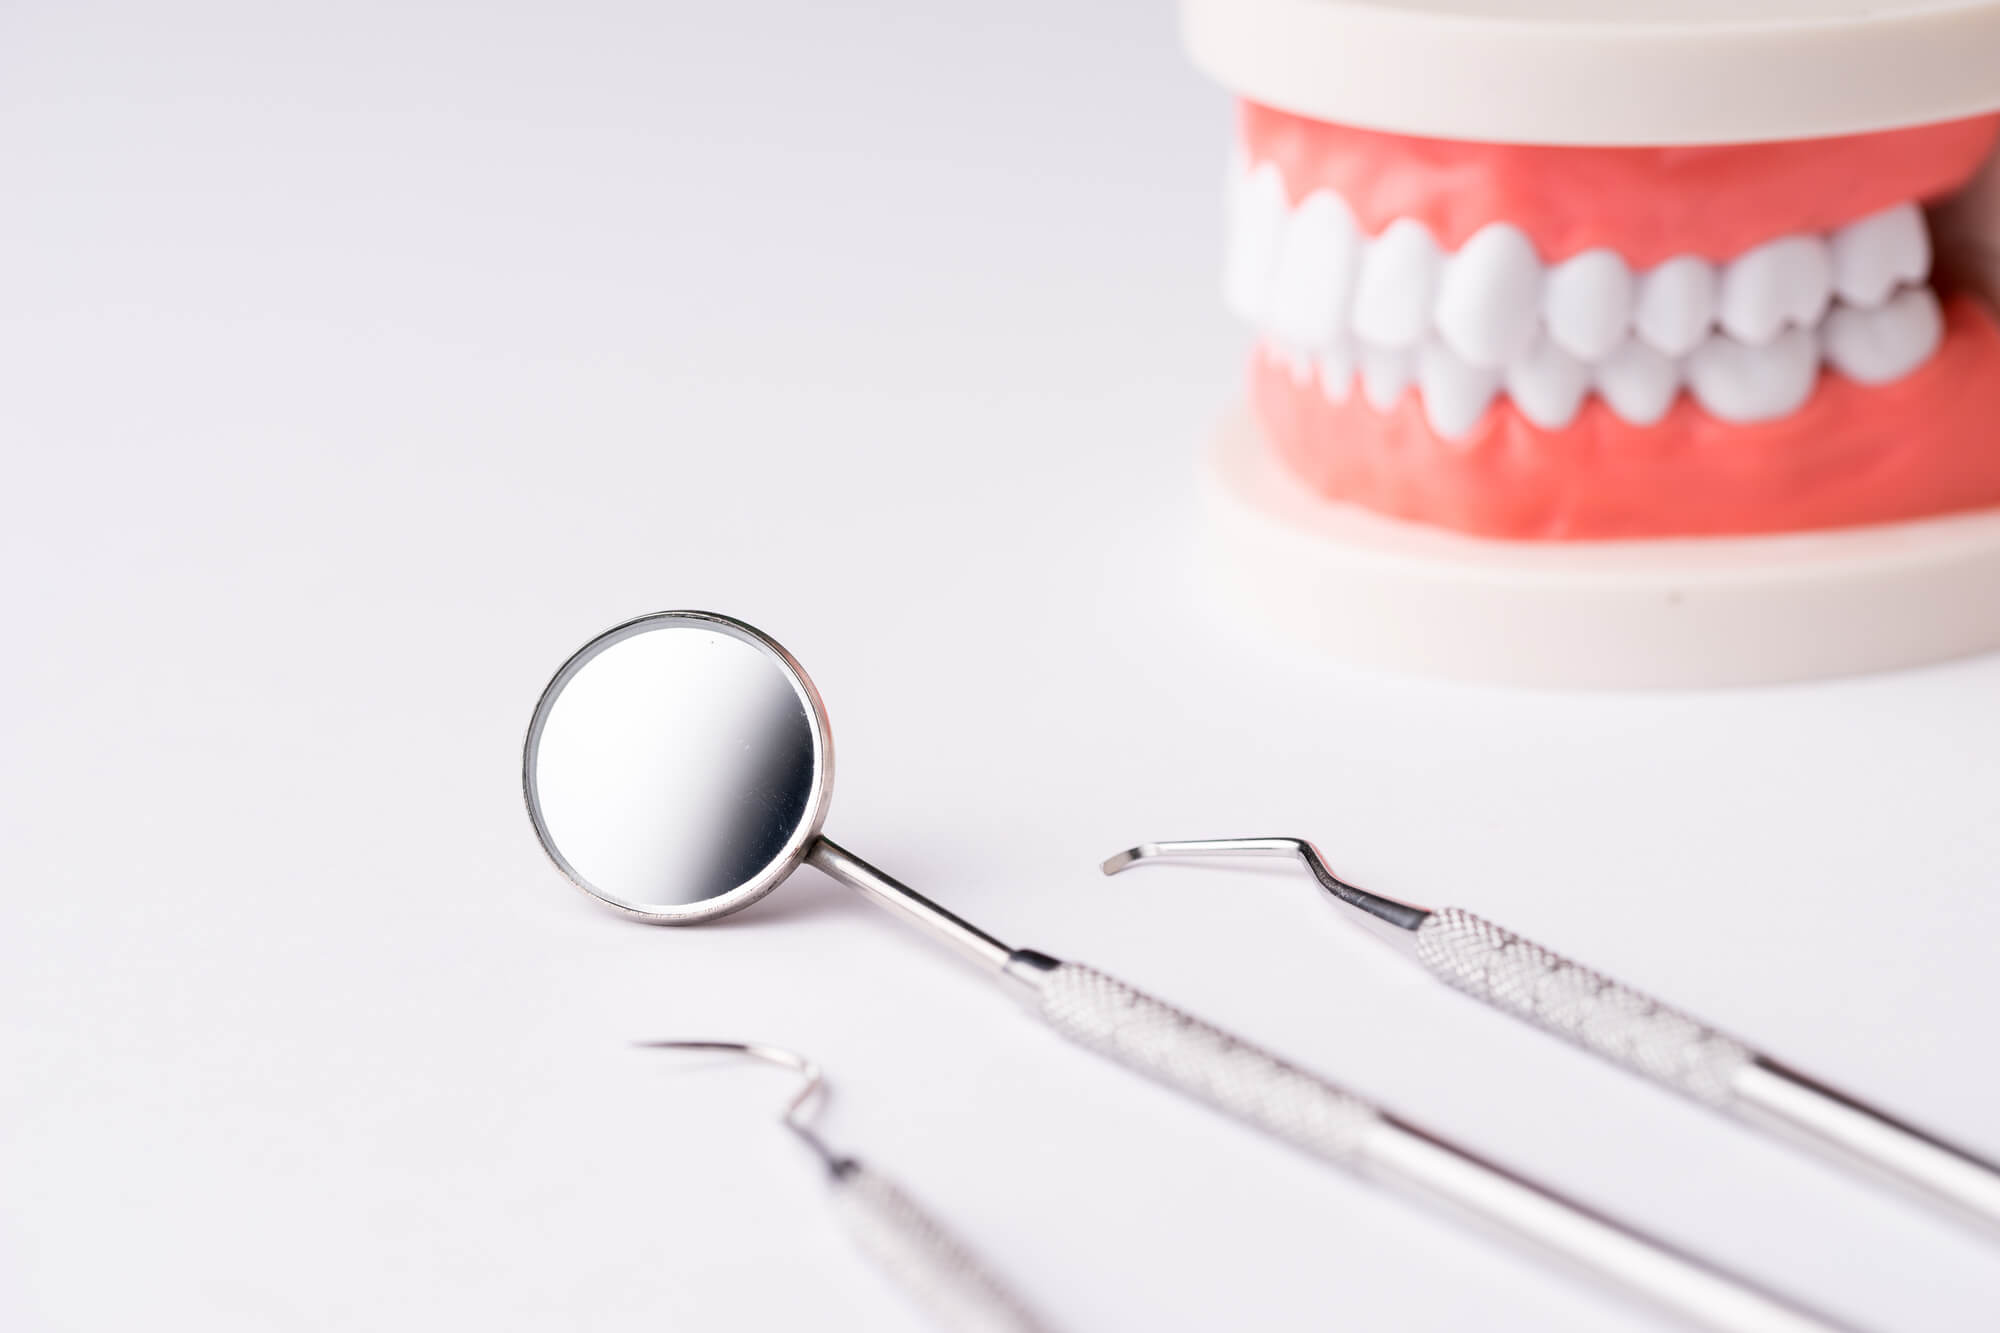 What are treatments from a dentist 33436?